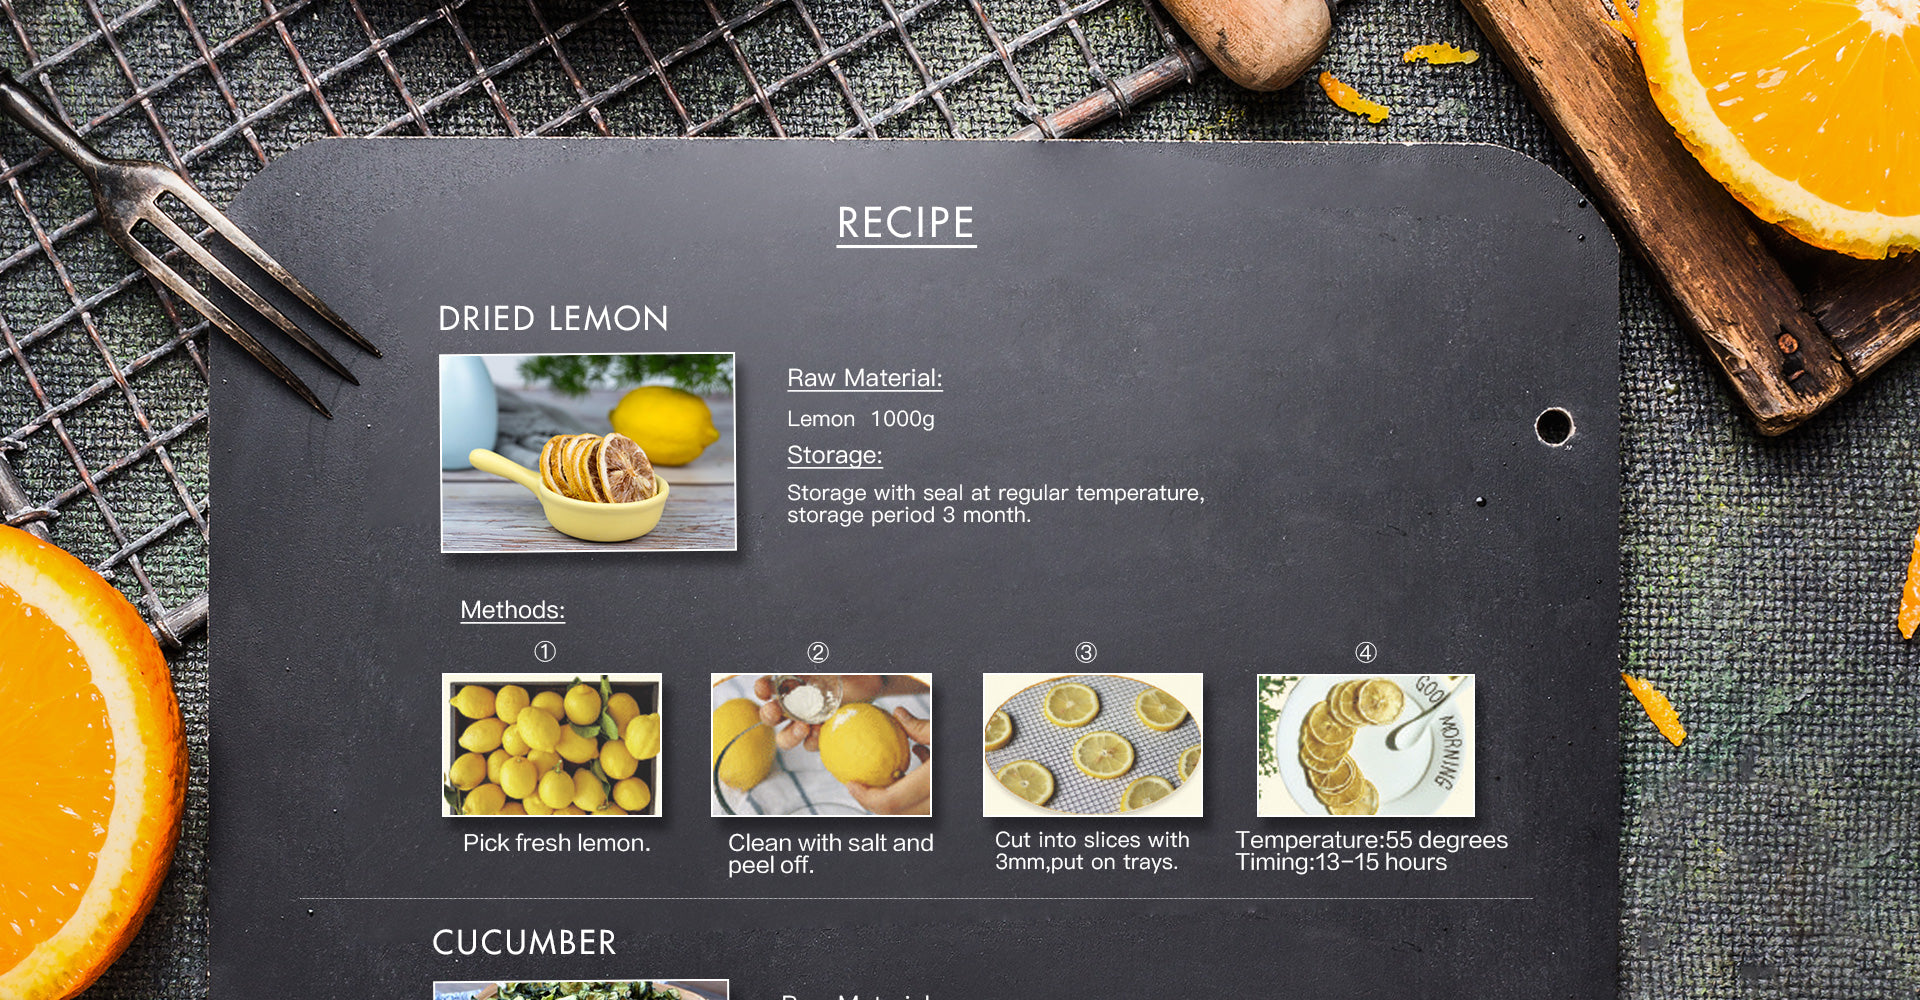 Pick fresh lemon, clean with salt and peel off. cut into slices with 3mm, put on trays. Temperature:55 degrees, Timing